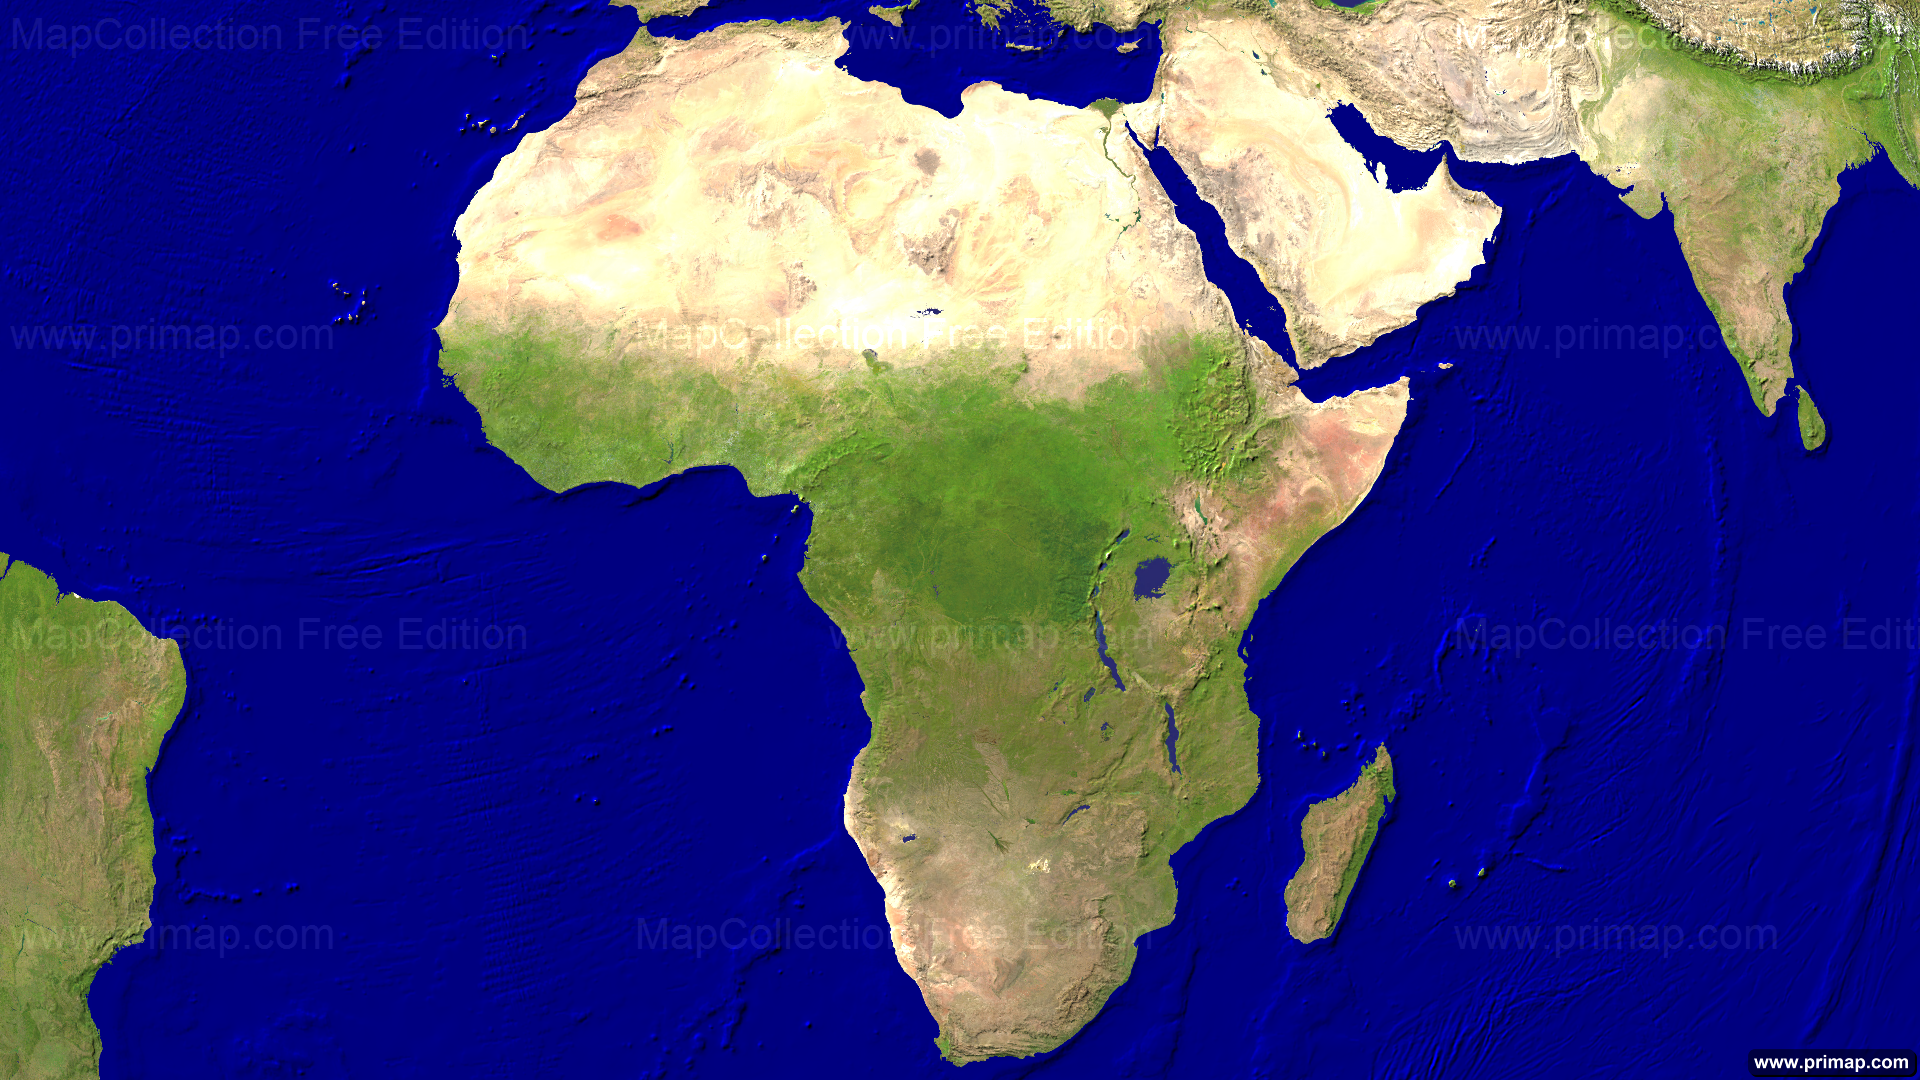 World Bank to Prepare Billion Dollar Map of Africas Natural Resources